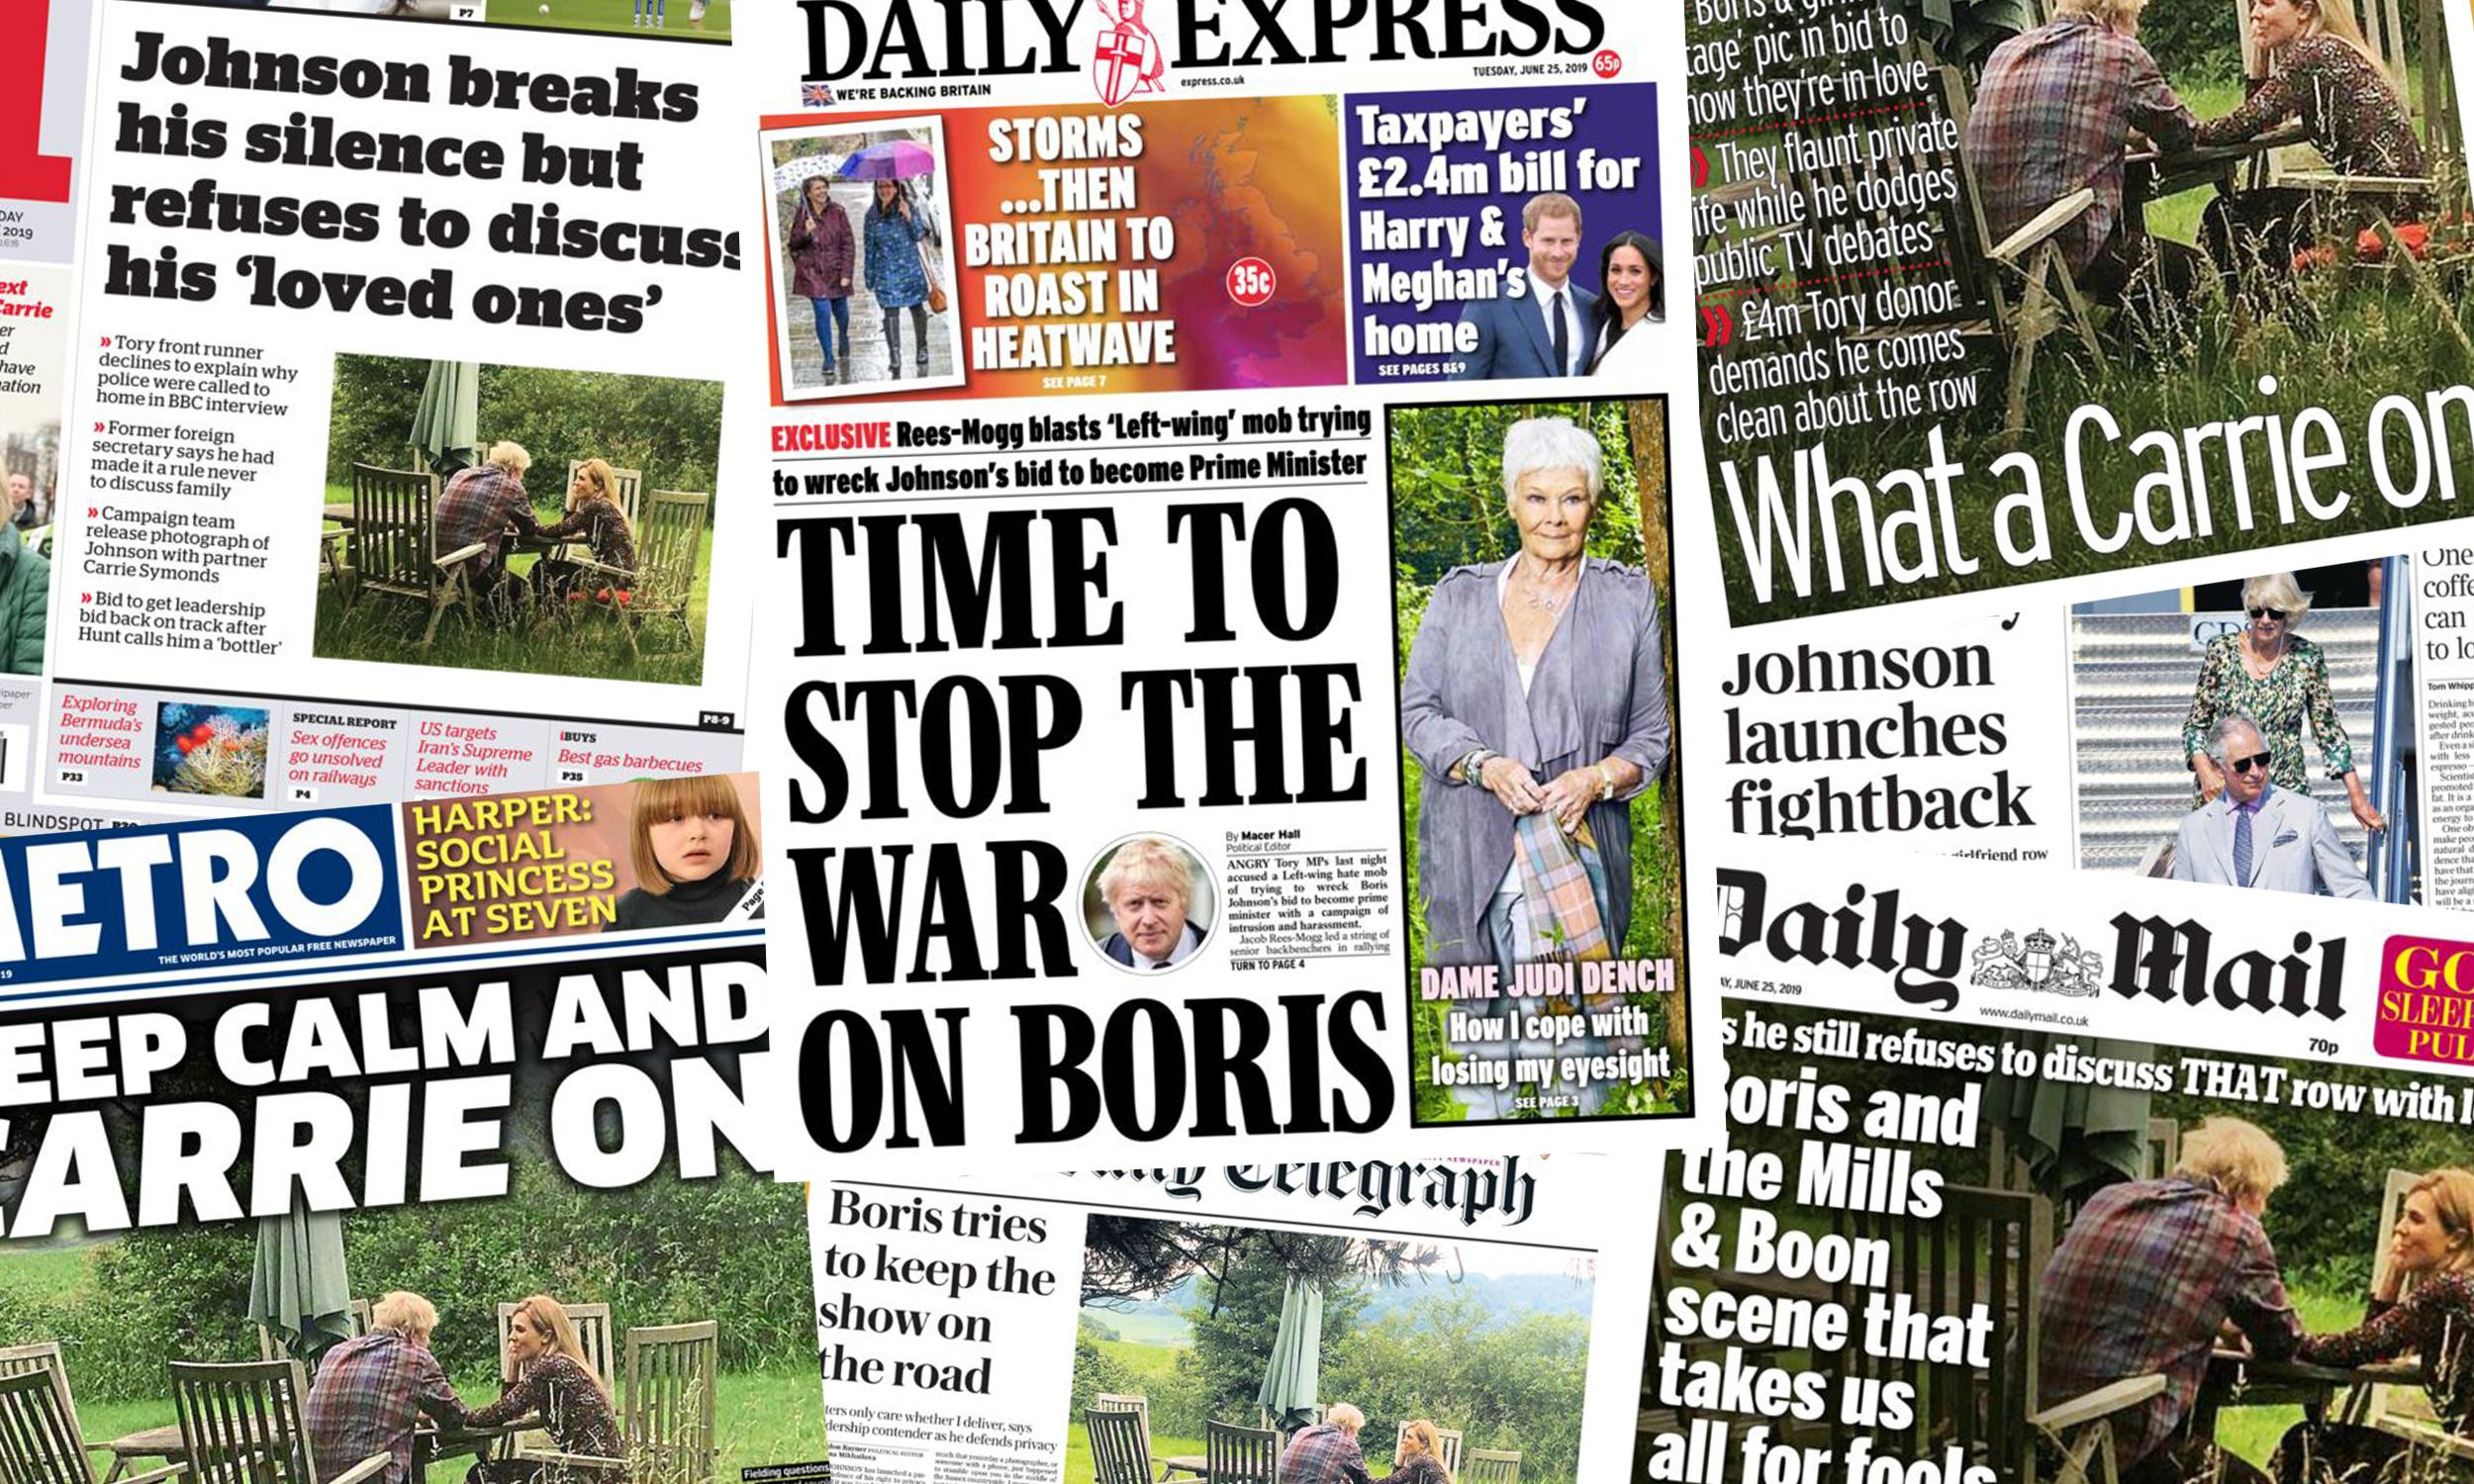 'What a Carrie on': what the papers say as Boris Johnson launches fightback